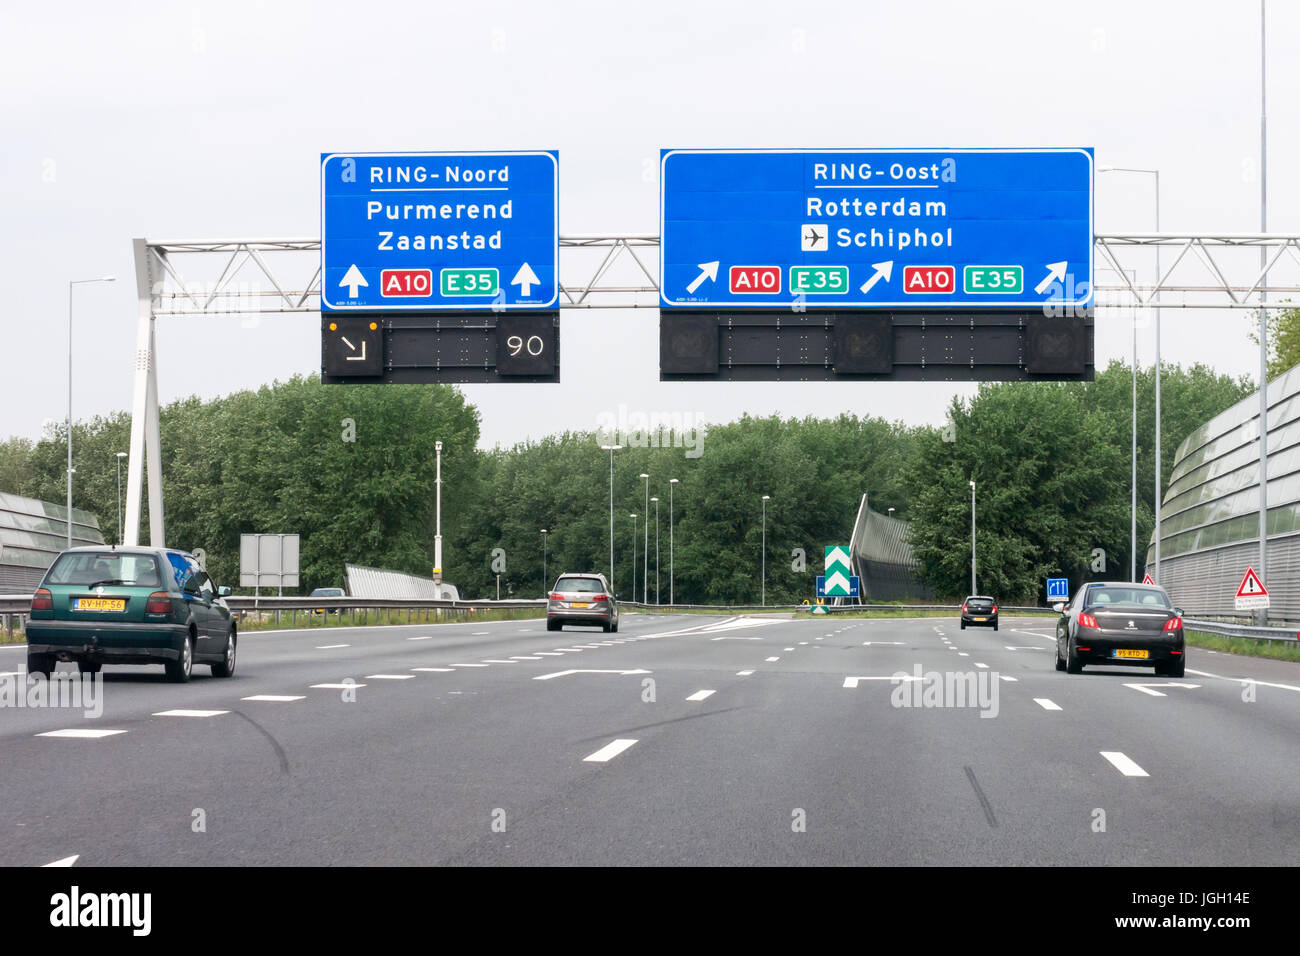 Ring Road Exit Stock Photos & Ring Road Exit Stock Images